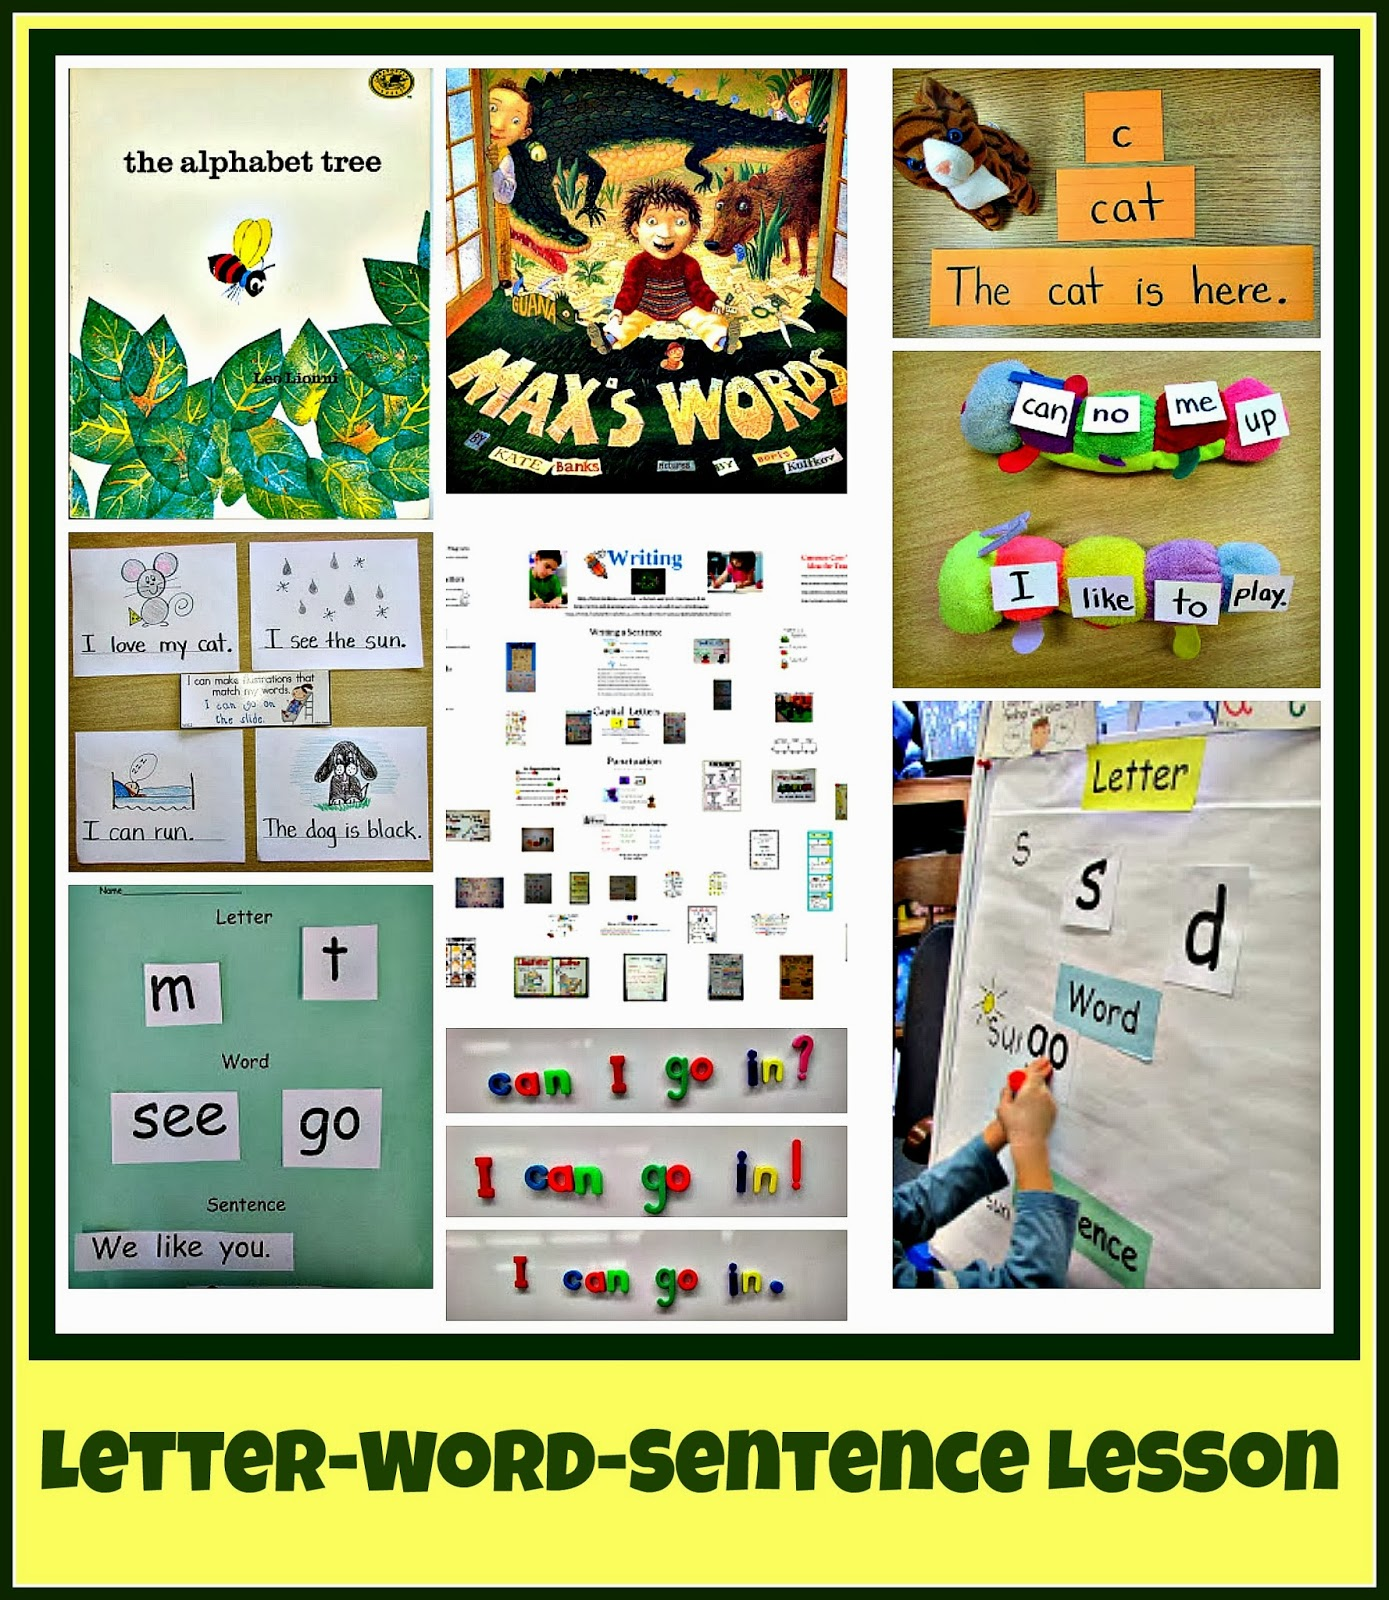 Letter K Words And Pictures Printable Cards King Key Karate Kiss